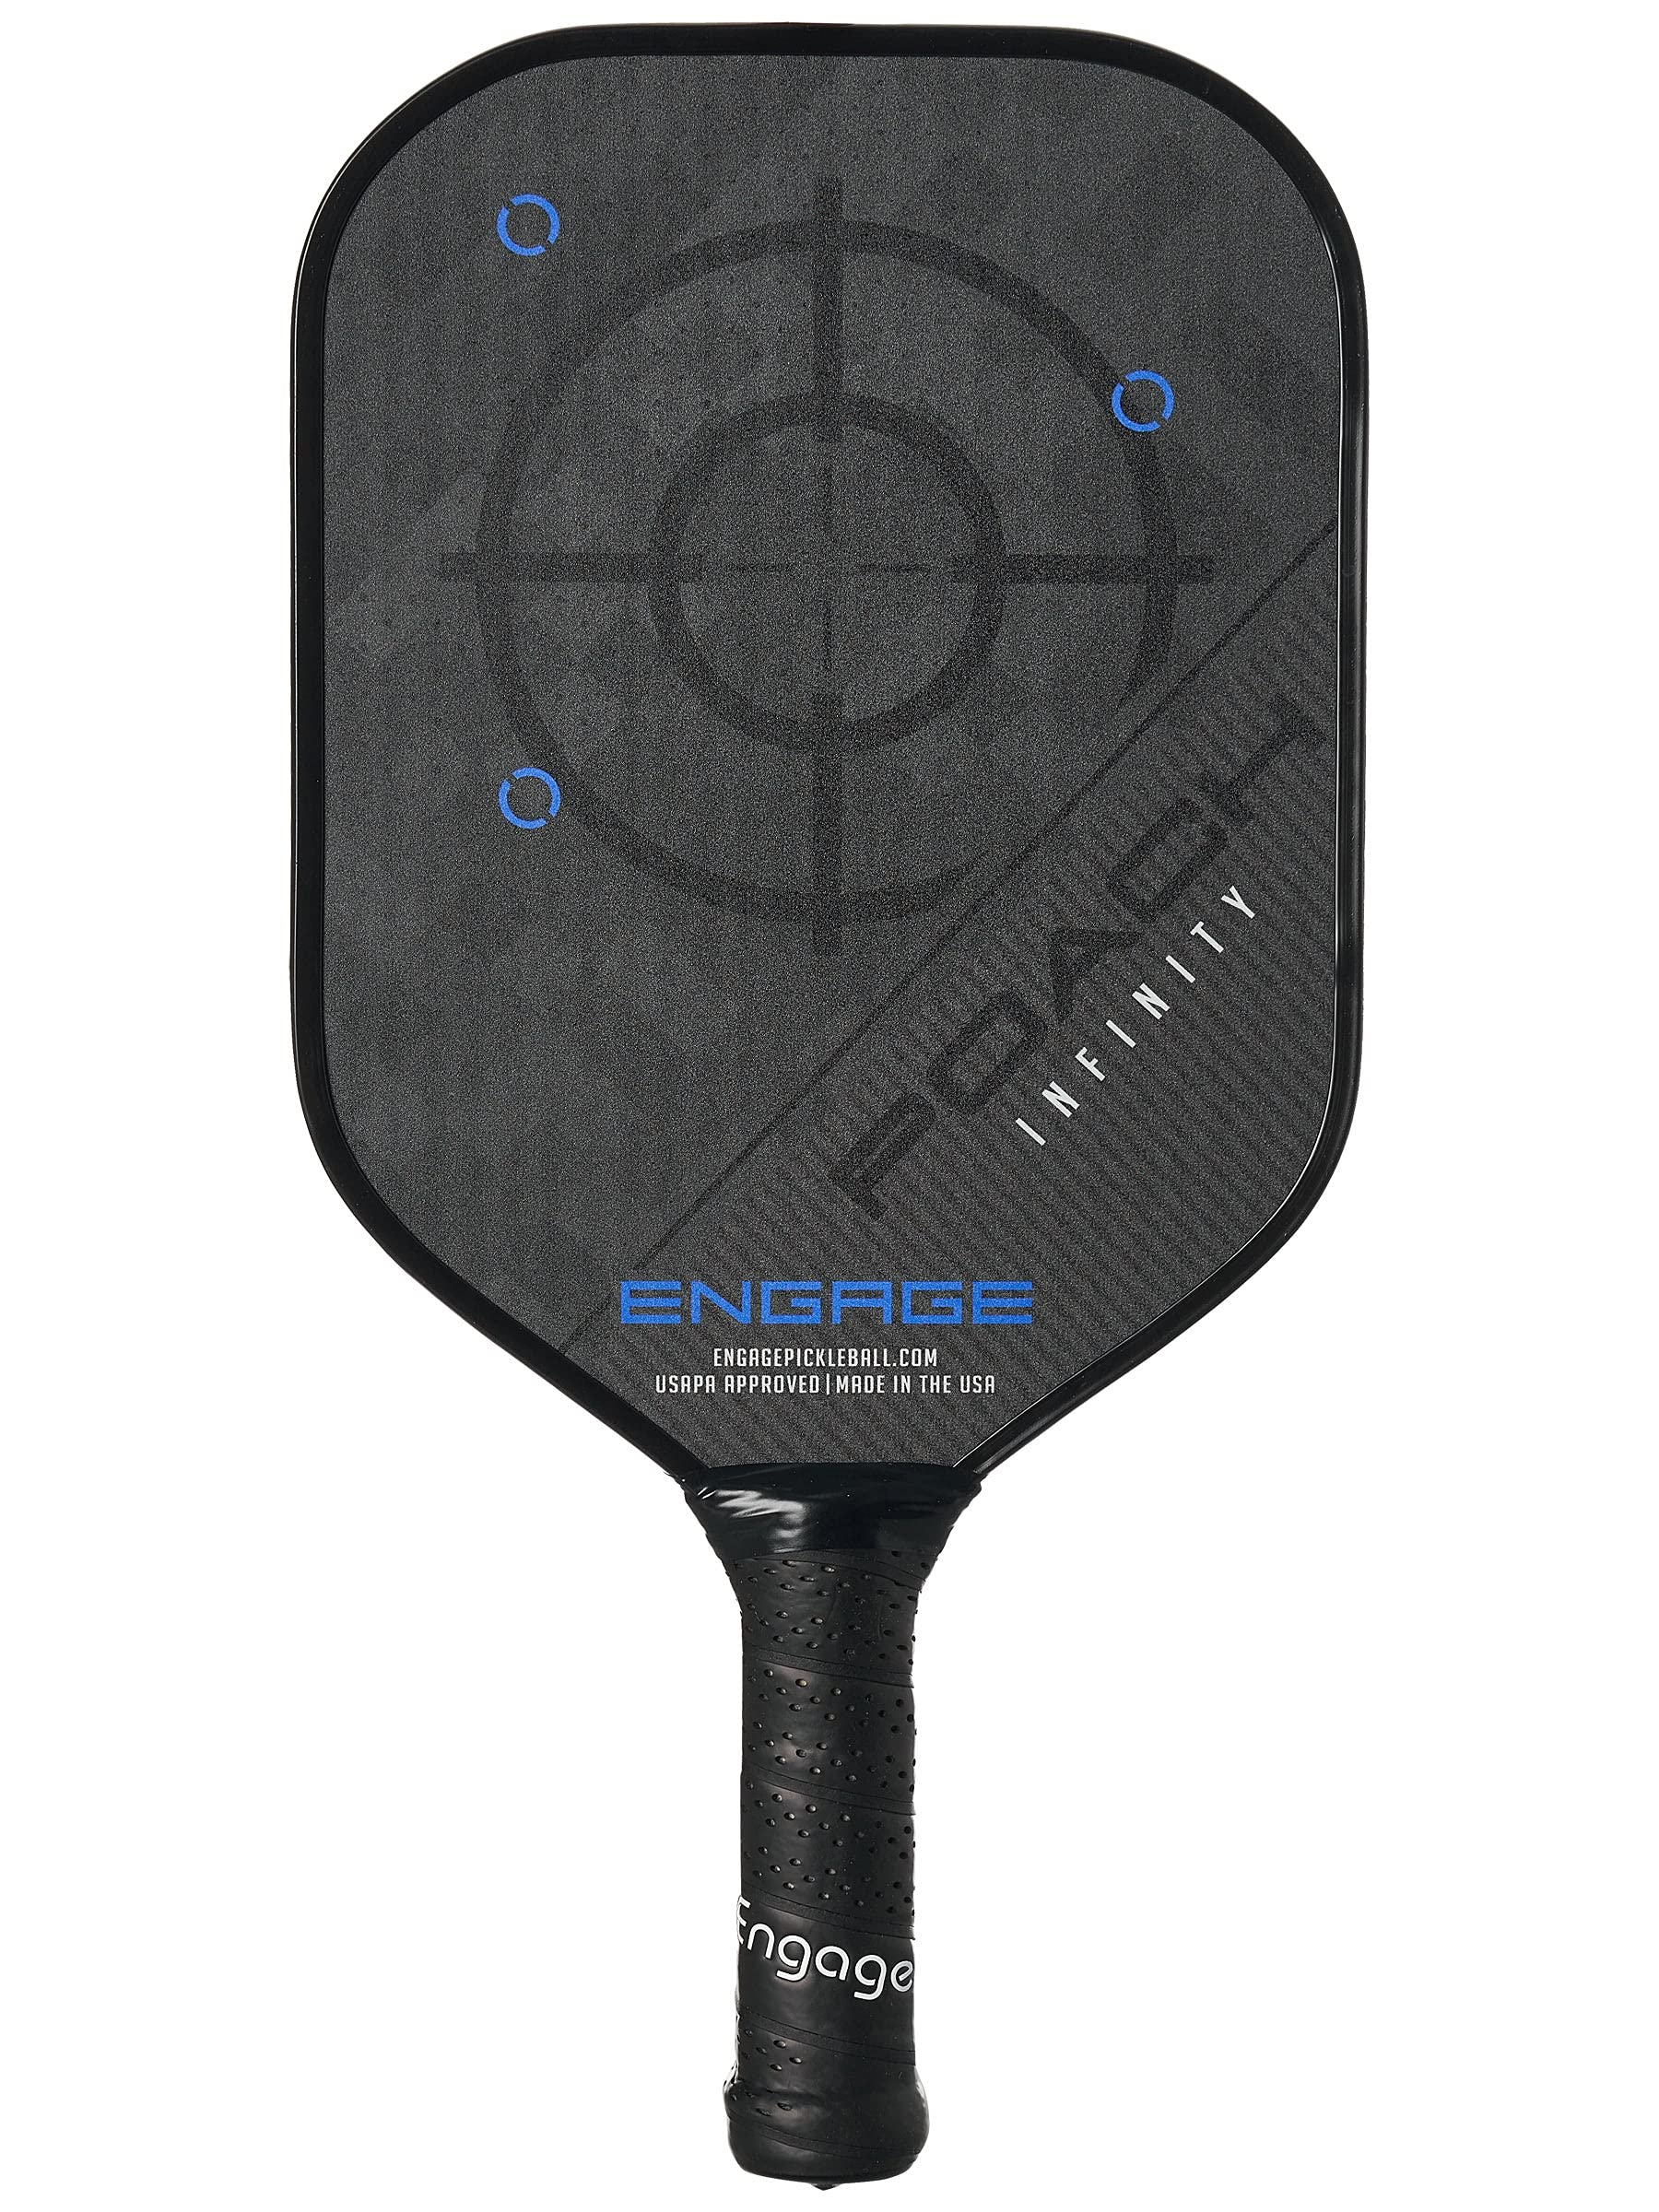 Engage Pickleball Poach Infinity The Second Generation -LQK8